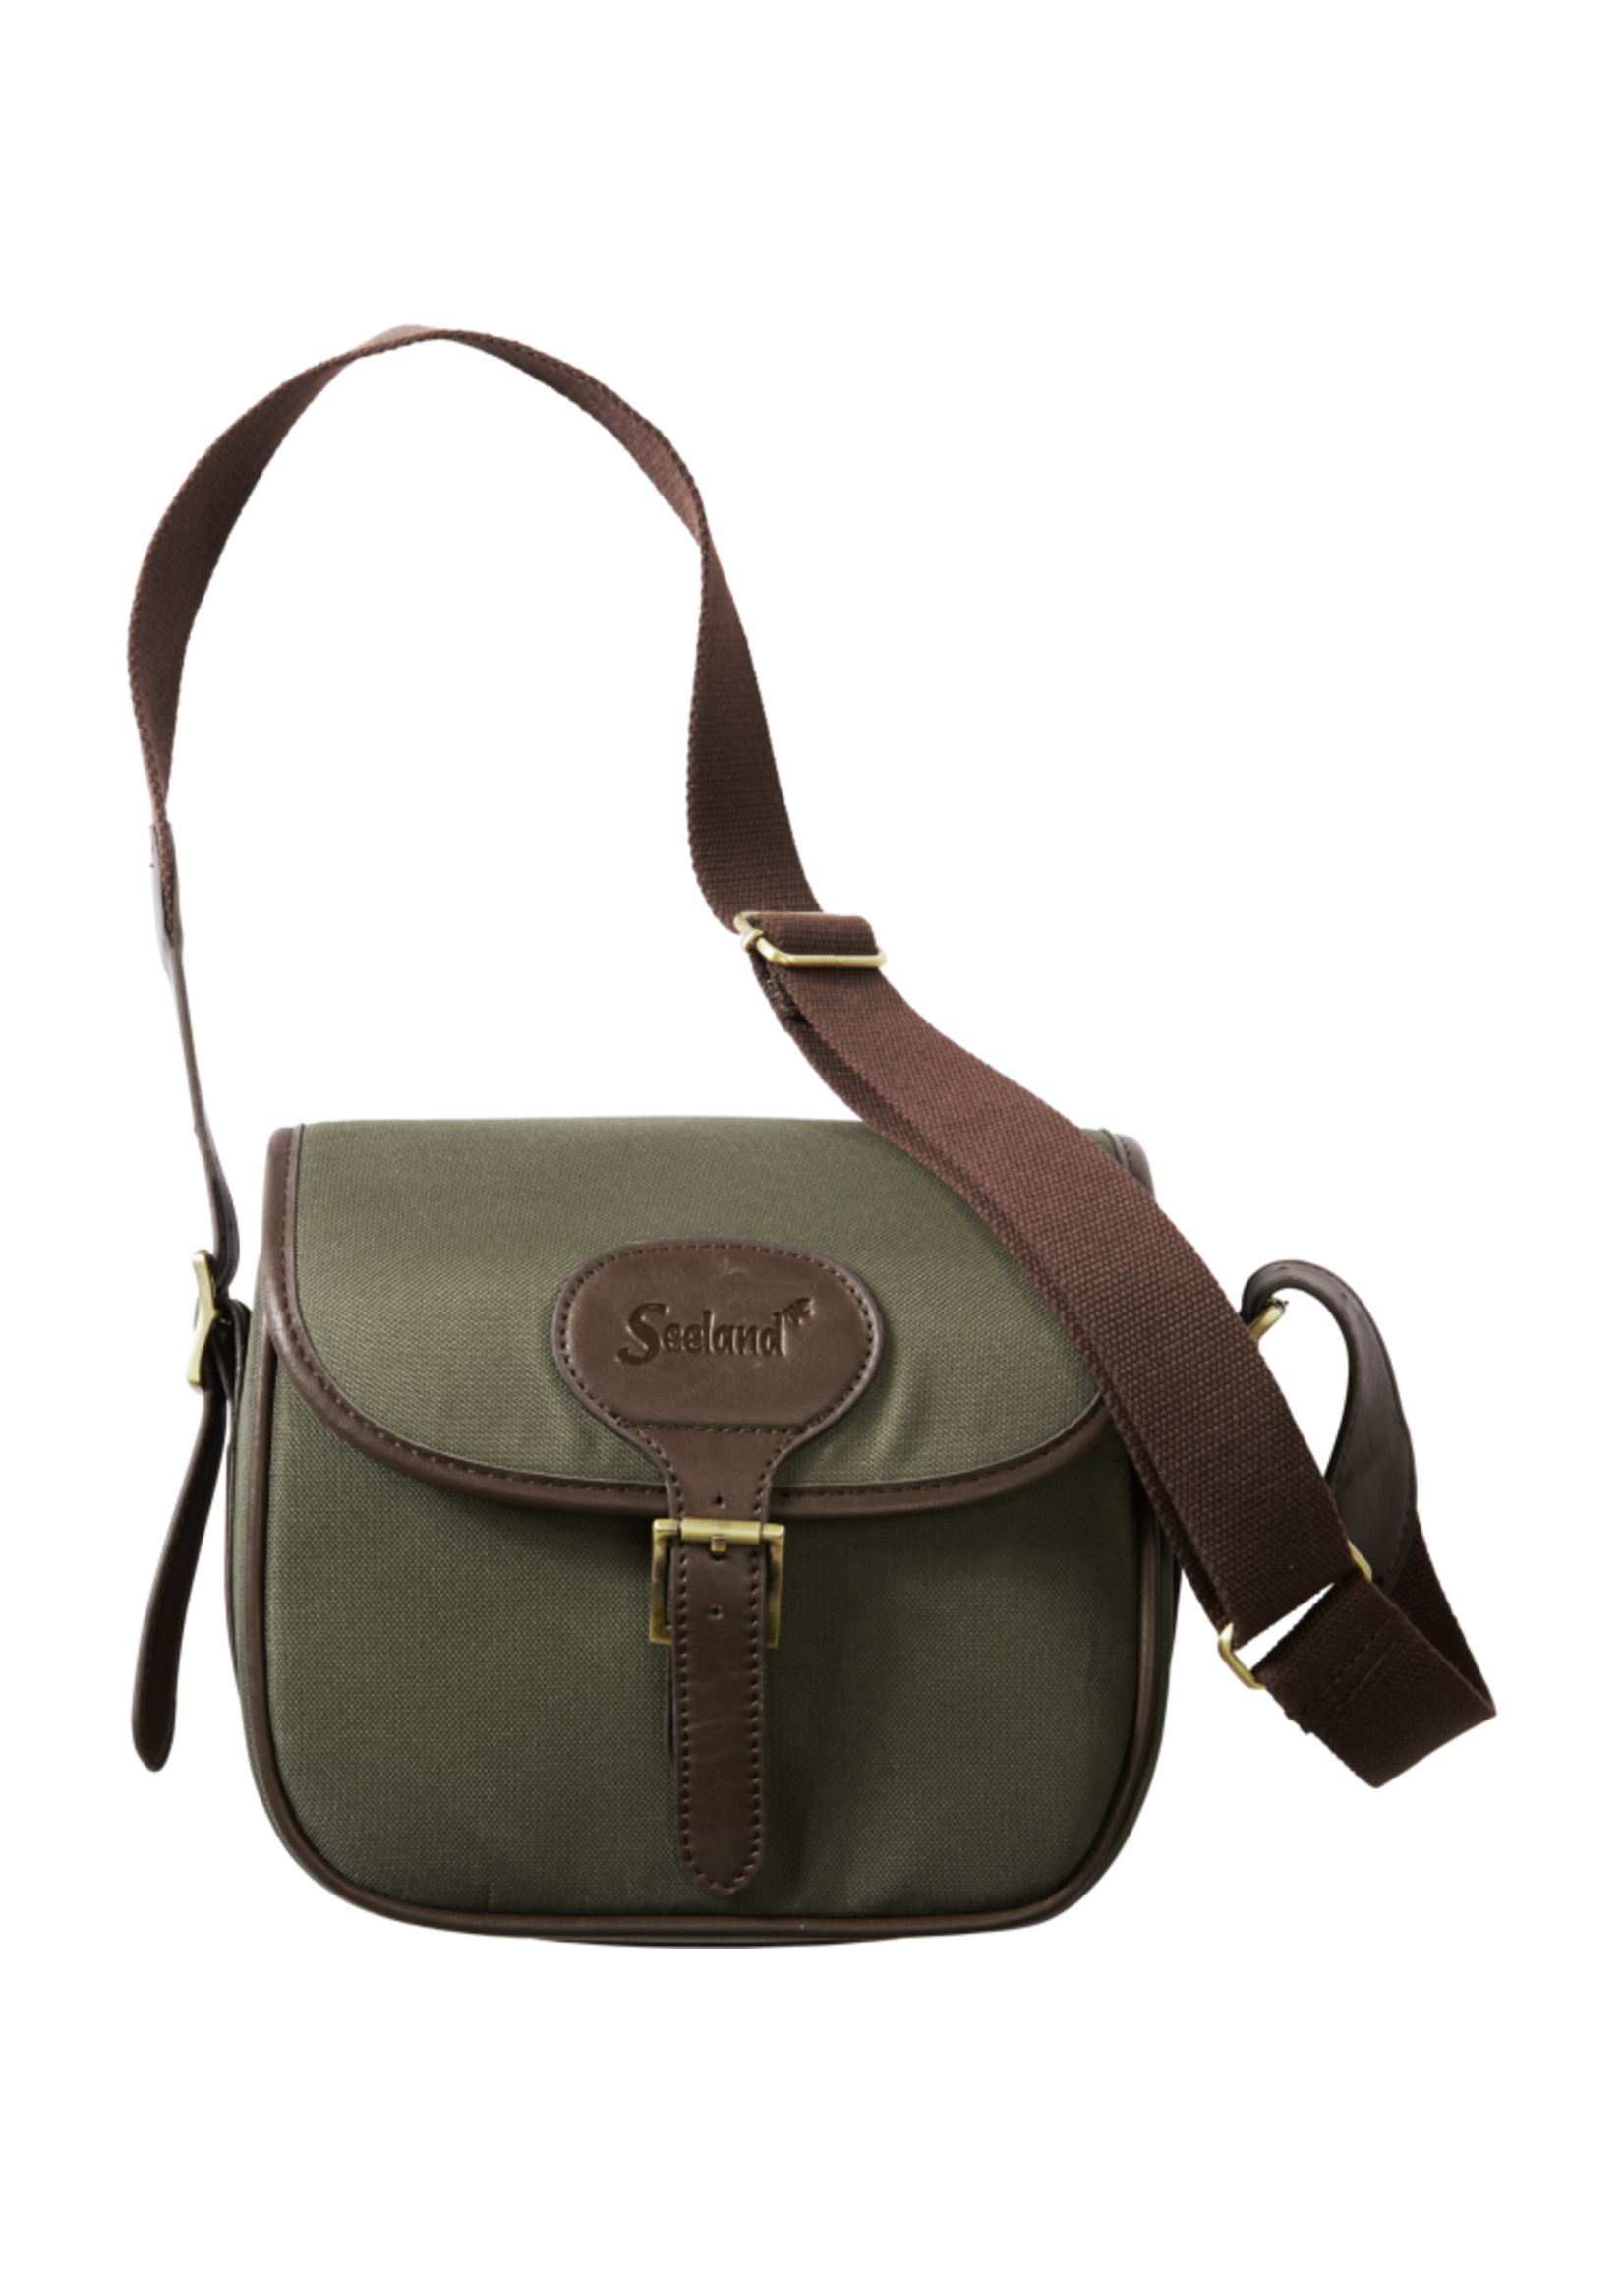 SEELAND CARTRIDGE BAG